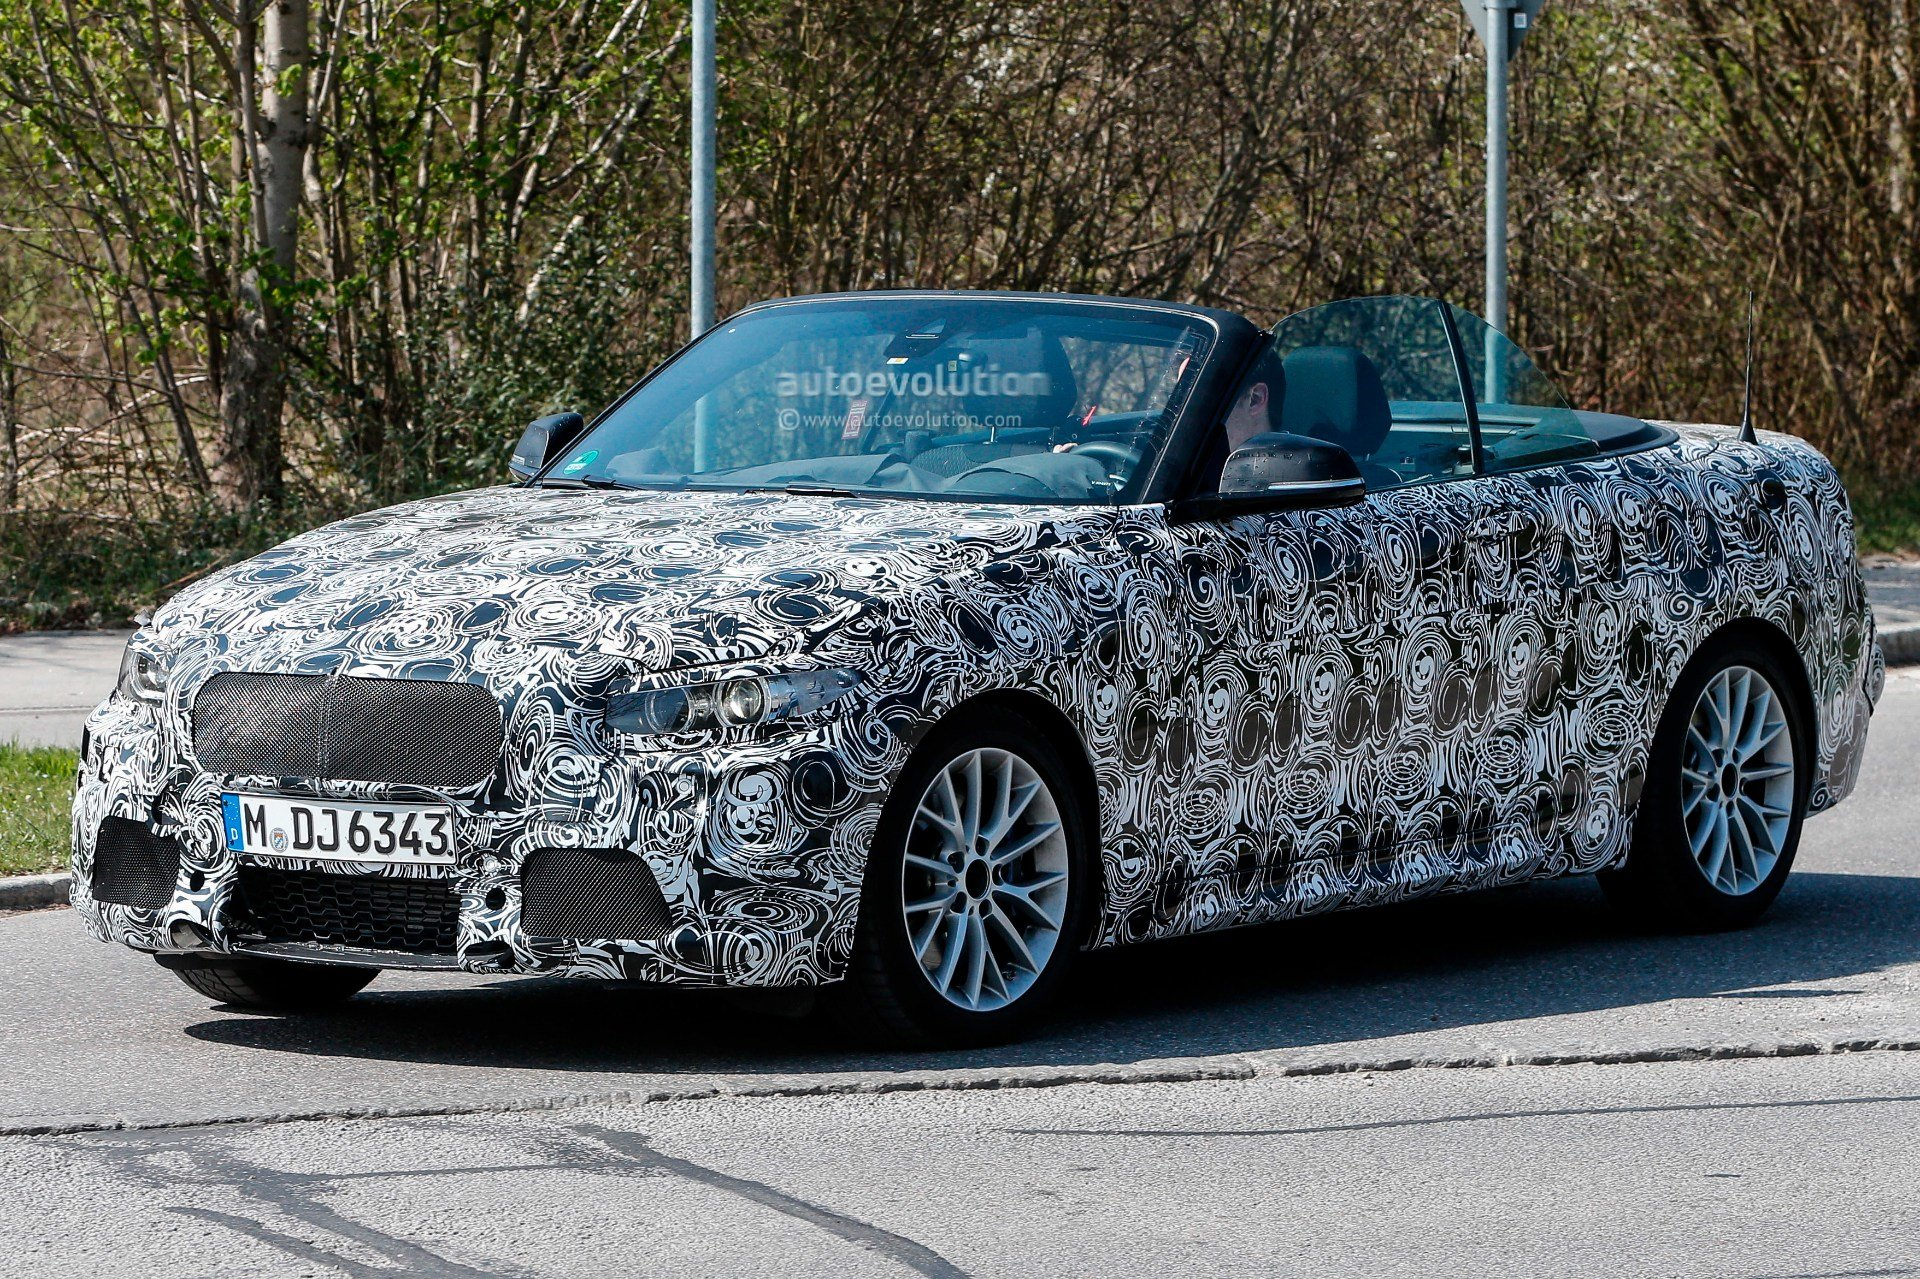 Latest Spyshots Bmw M235I Cabrio Caught With Its Top Down Free Download